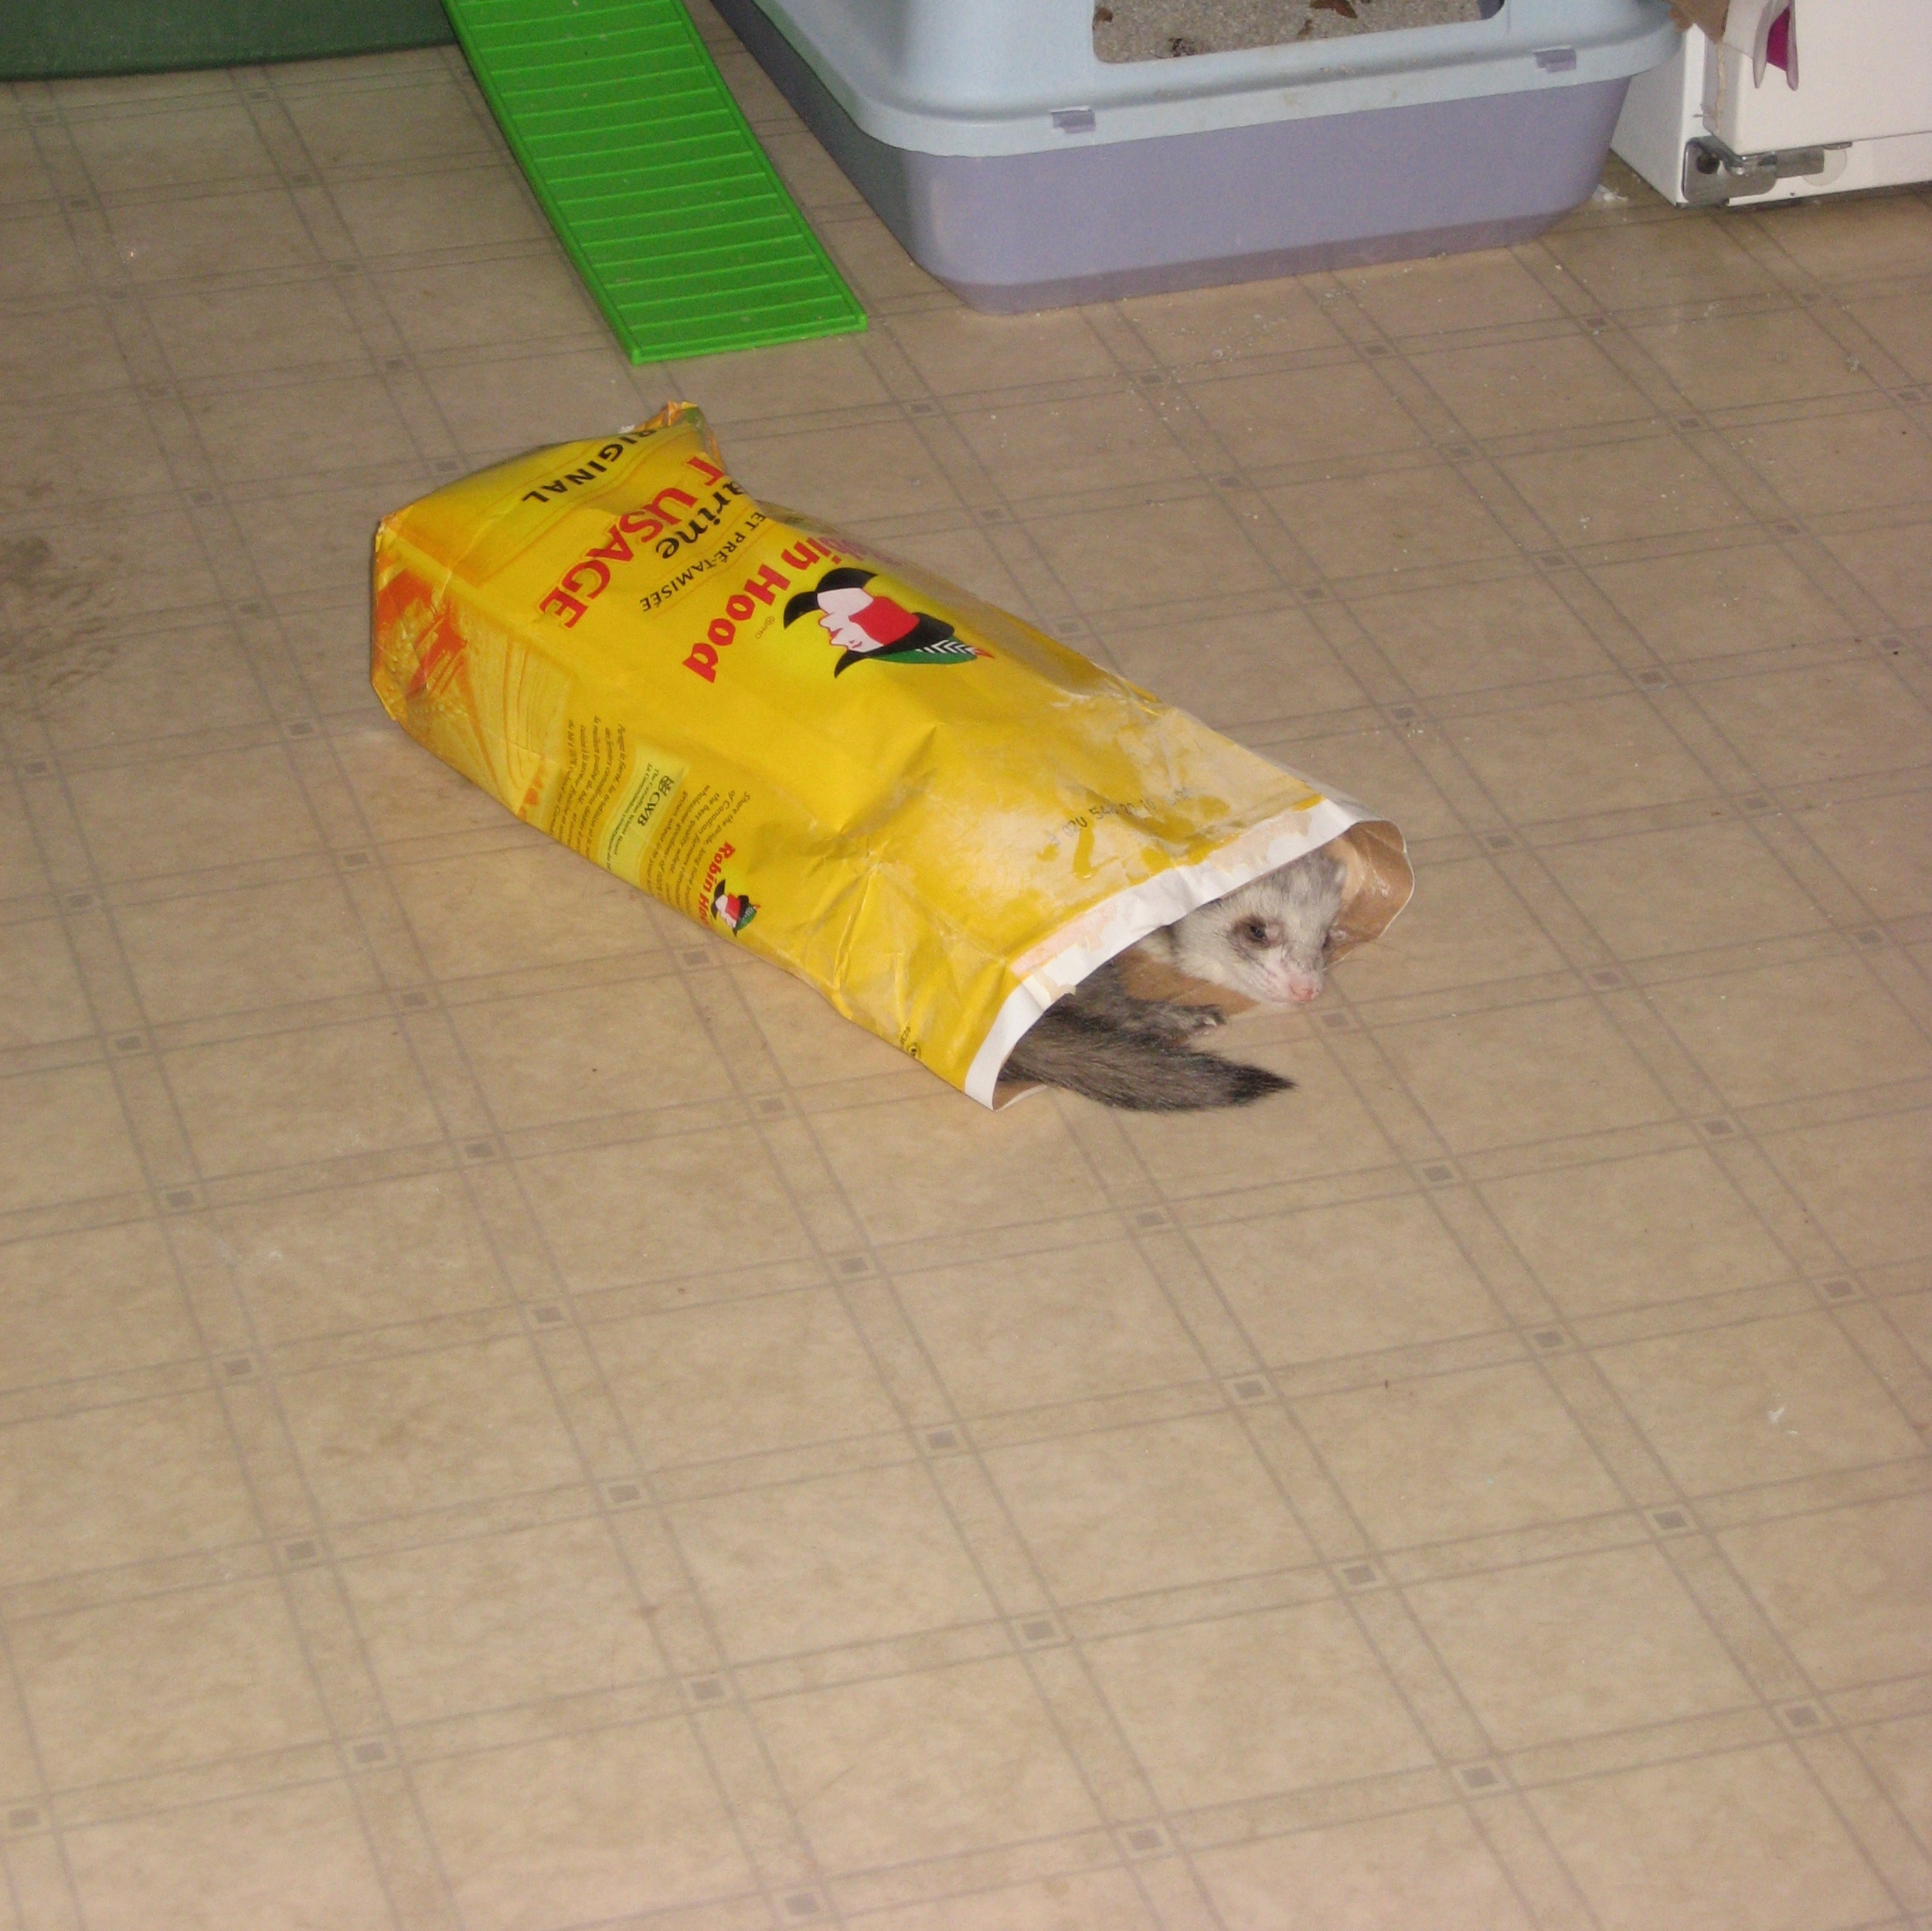 Duke discovers that his caregiver was recording him getting into trouble and posting it on YouTube. Click on the video page to see for yourself. He's so embarrassed that he curls up in an empty bag of flour for a nap, hoping to gain sympathy points.